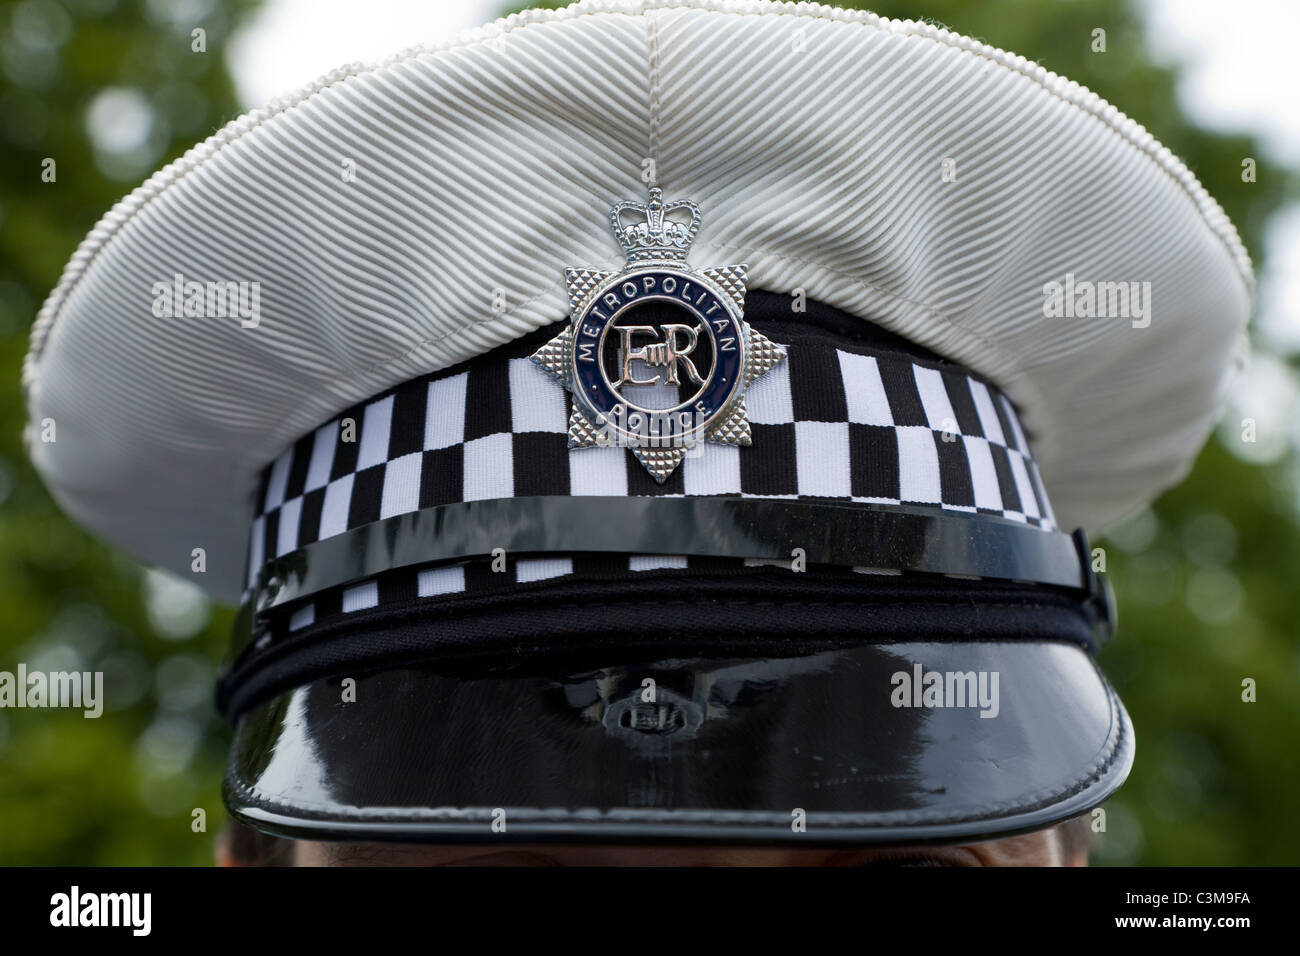 Traffic police   London Metropolitan   Met traffic policeman s hat with  white cover 165568262c83